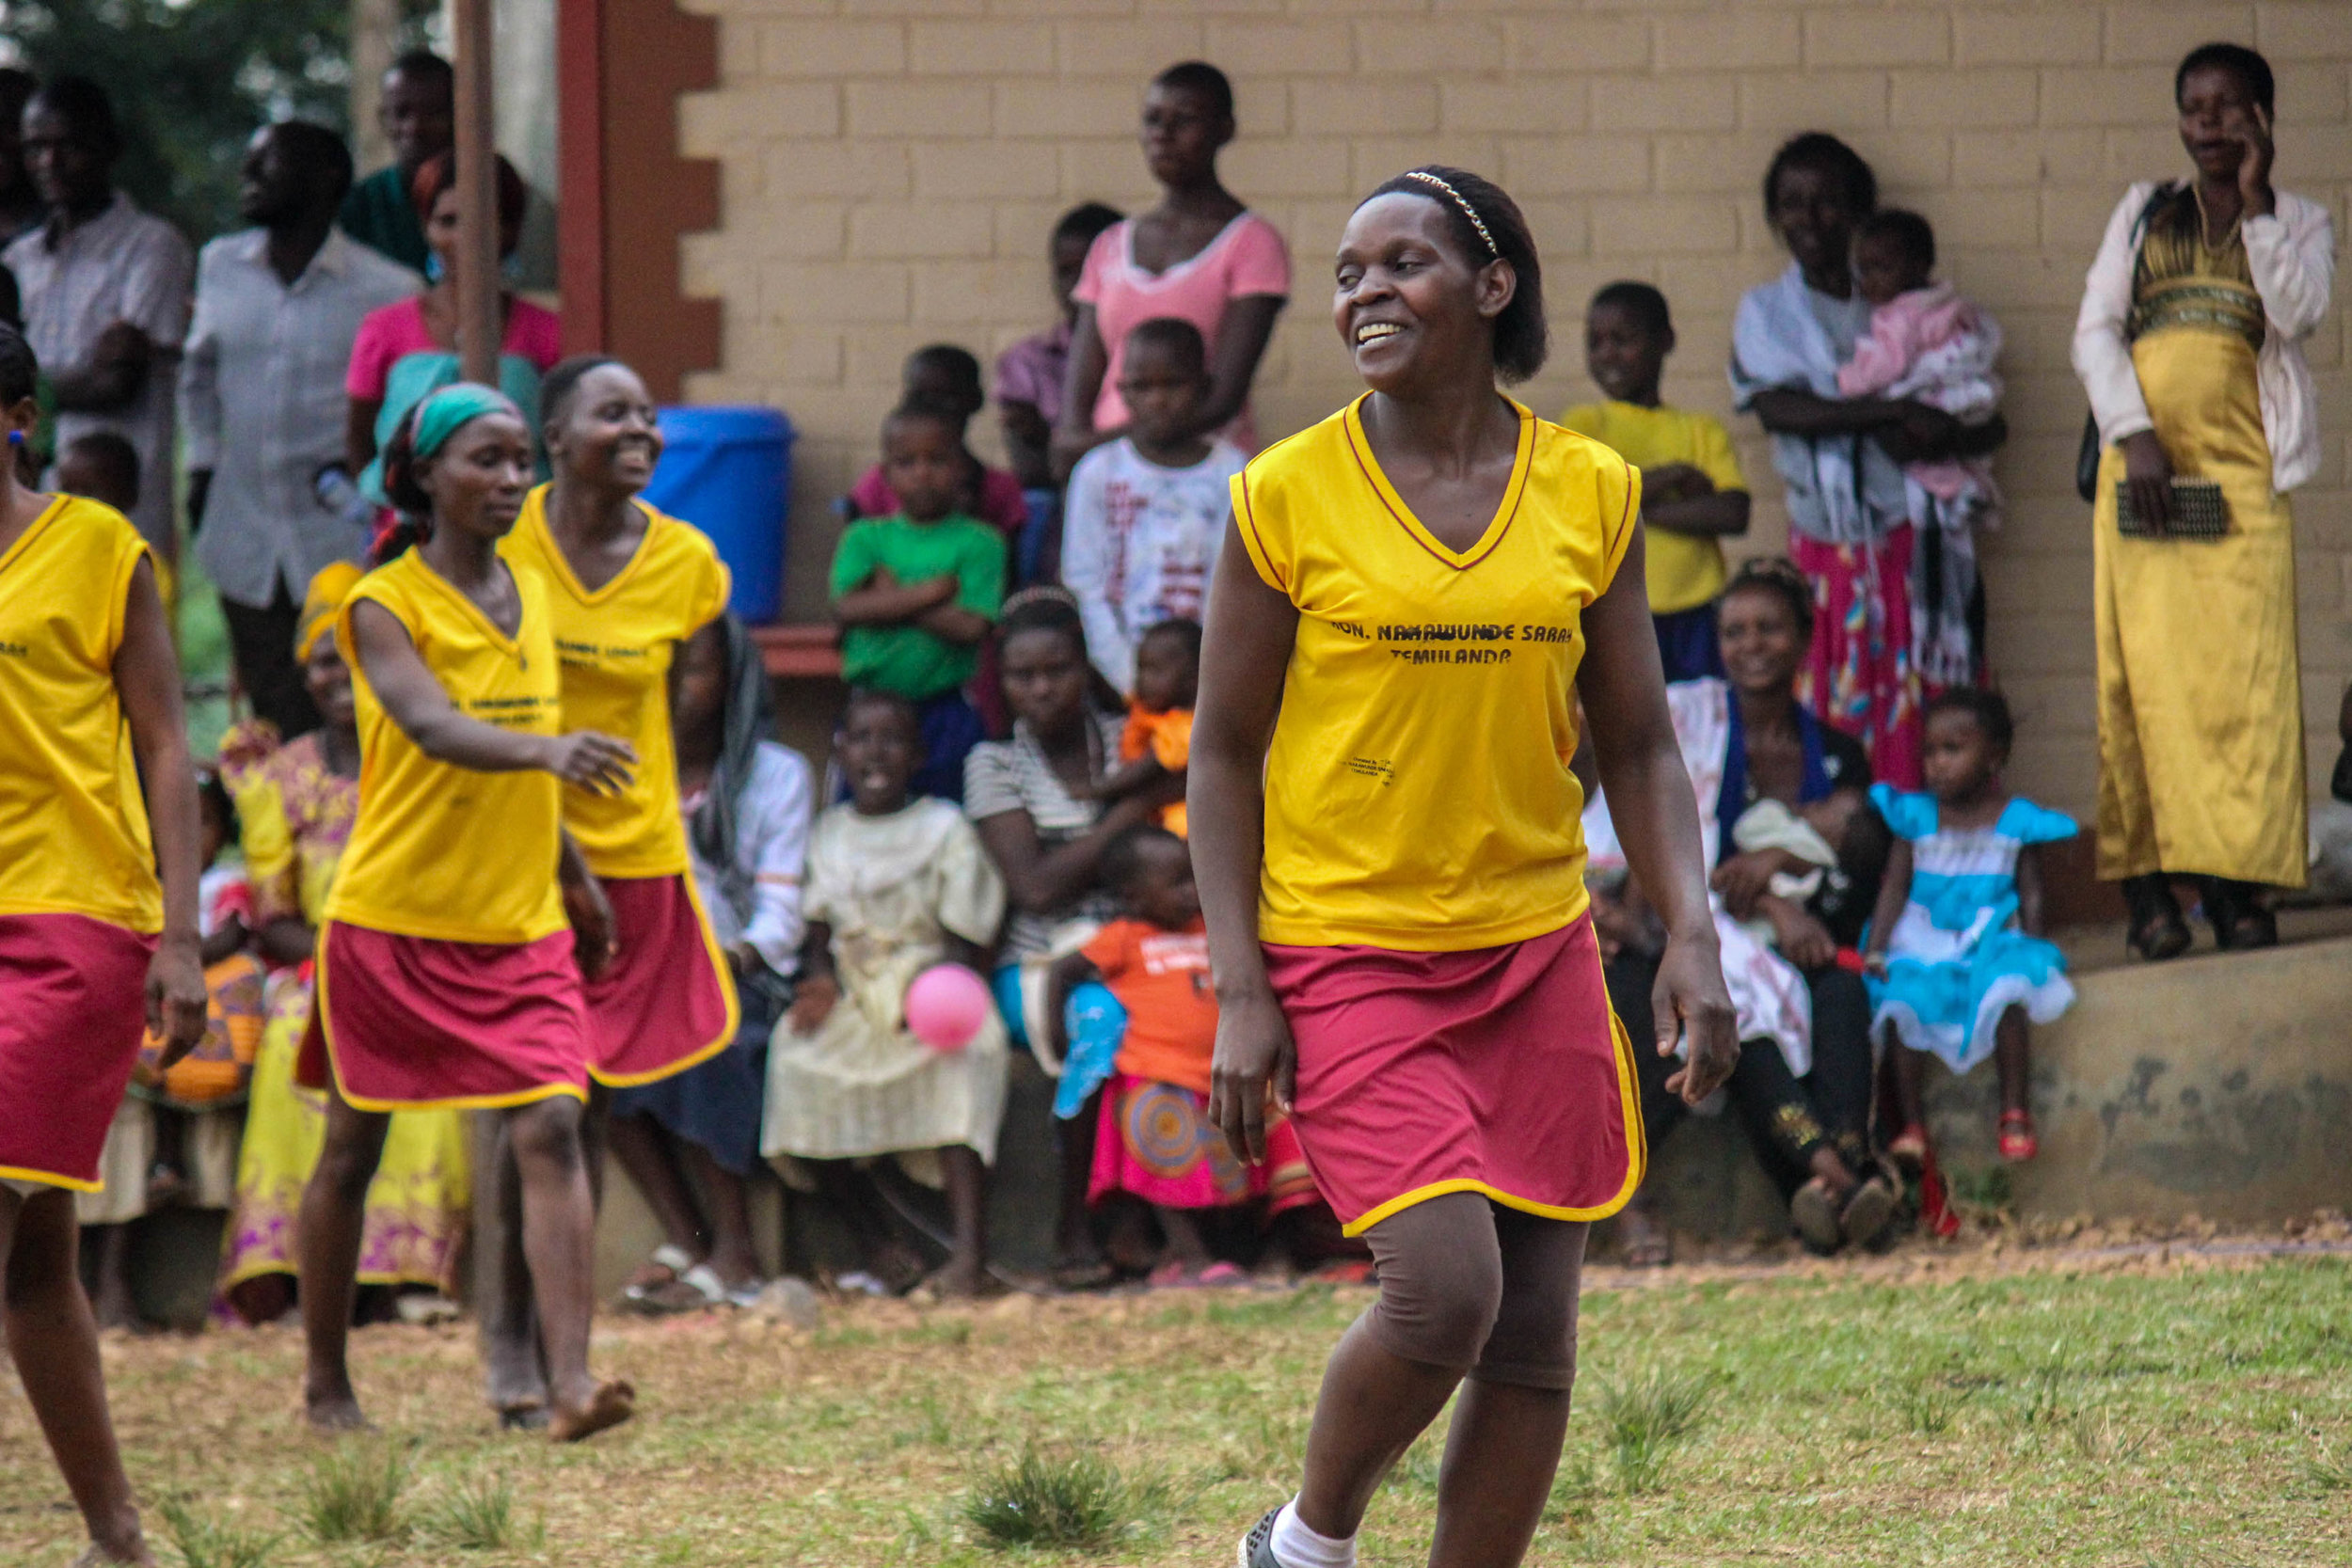 The parents vs teachers ladies netball match was a fierce event to watch for all. Teachers won in a tight match.